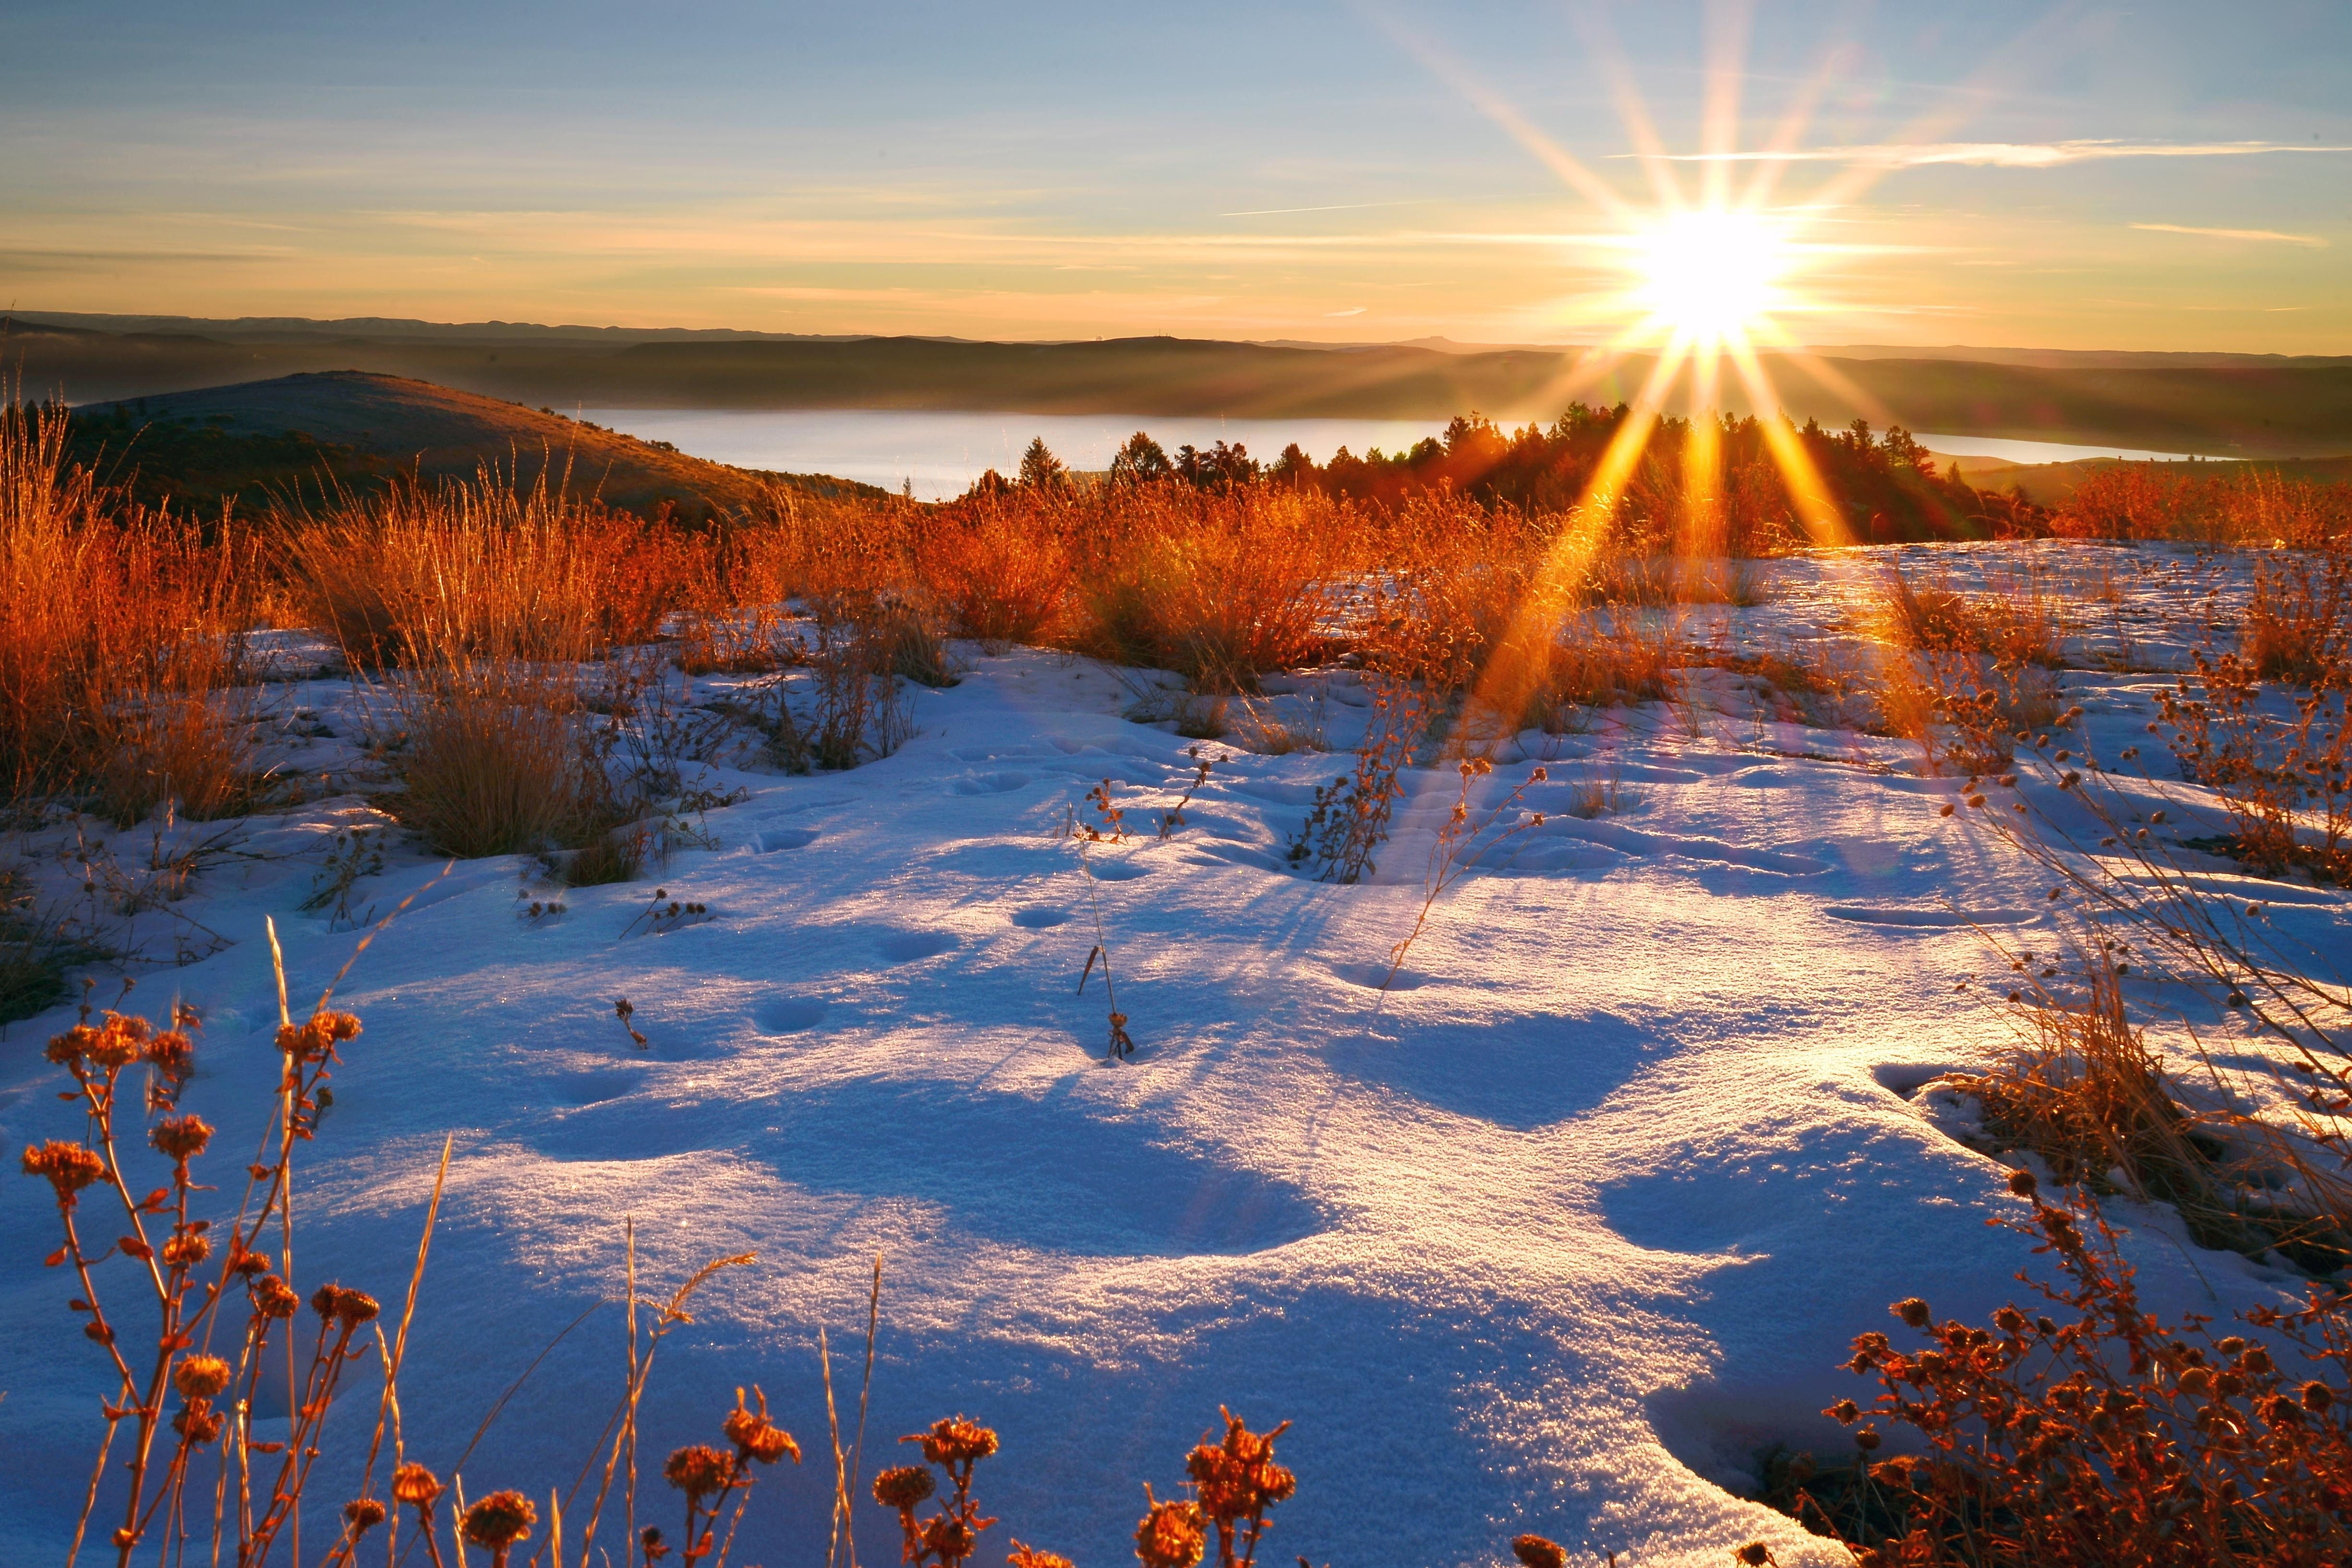 The sun rises over a lake surrounded by snow.